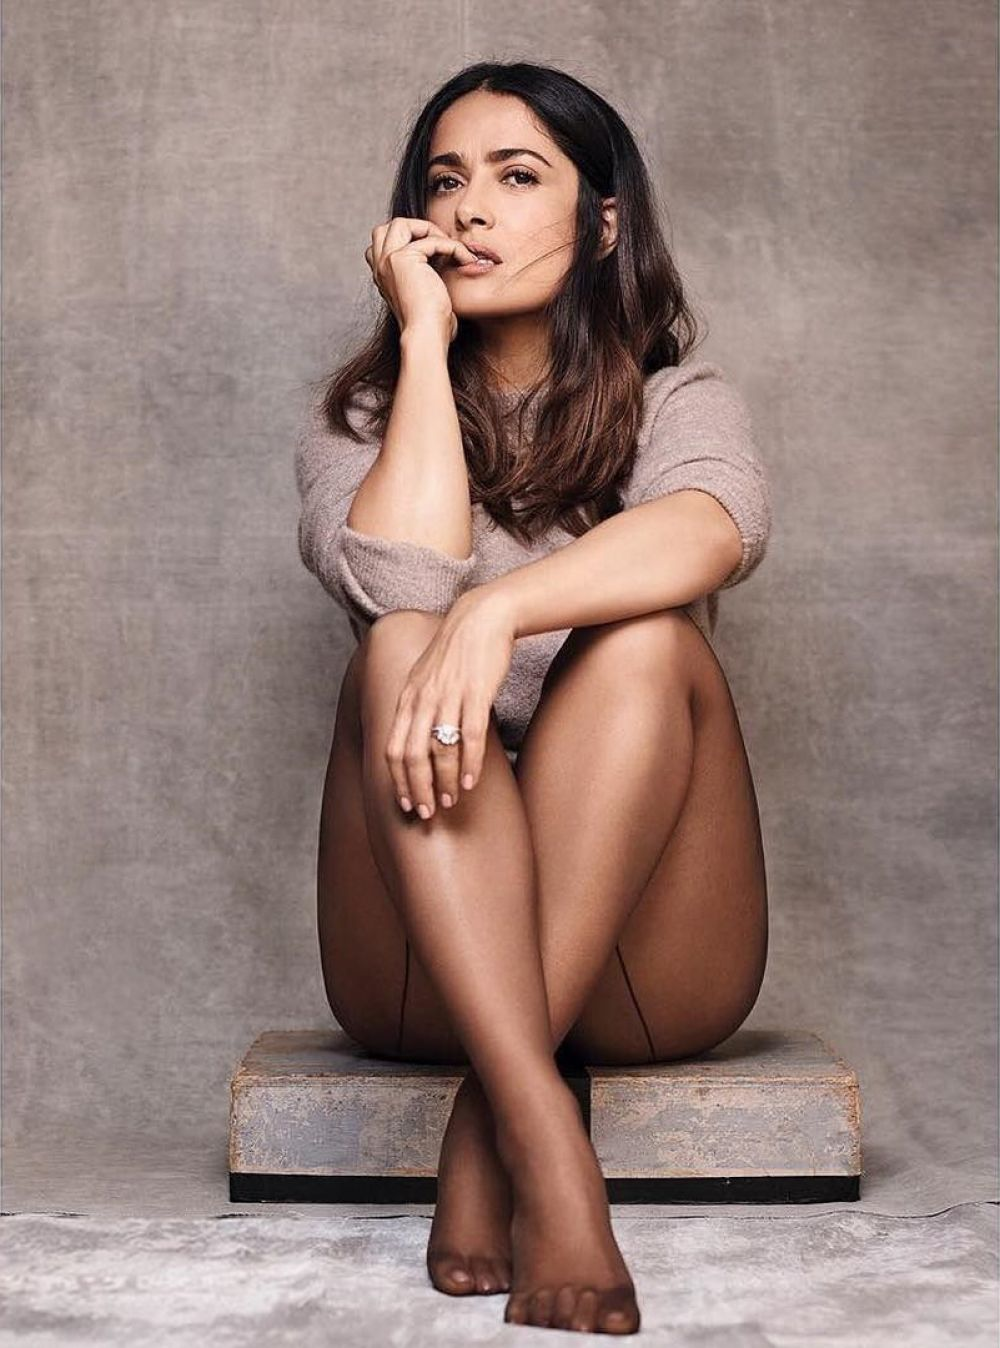 Salma Hayek - Mexican-American actress, producer, and philanthropist